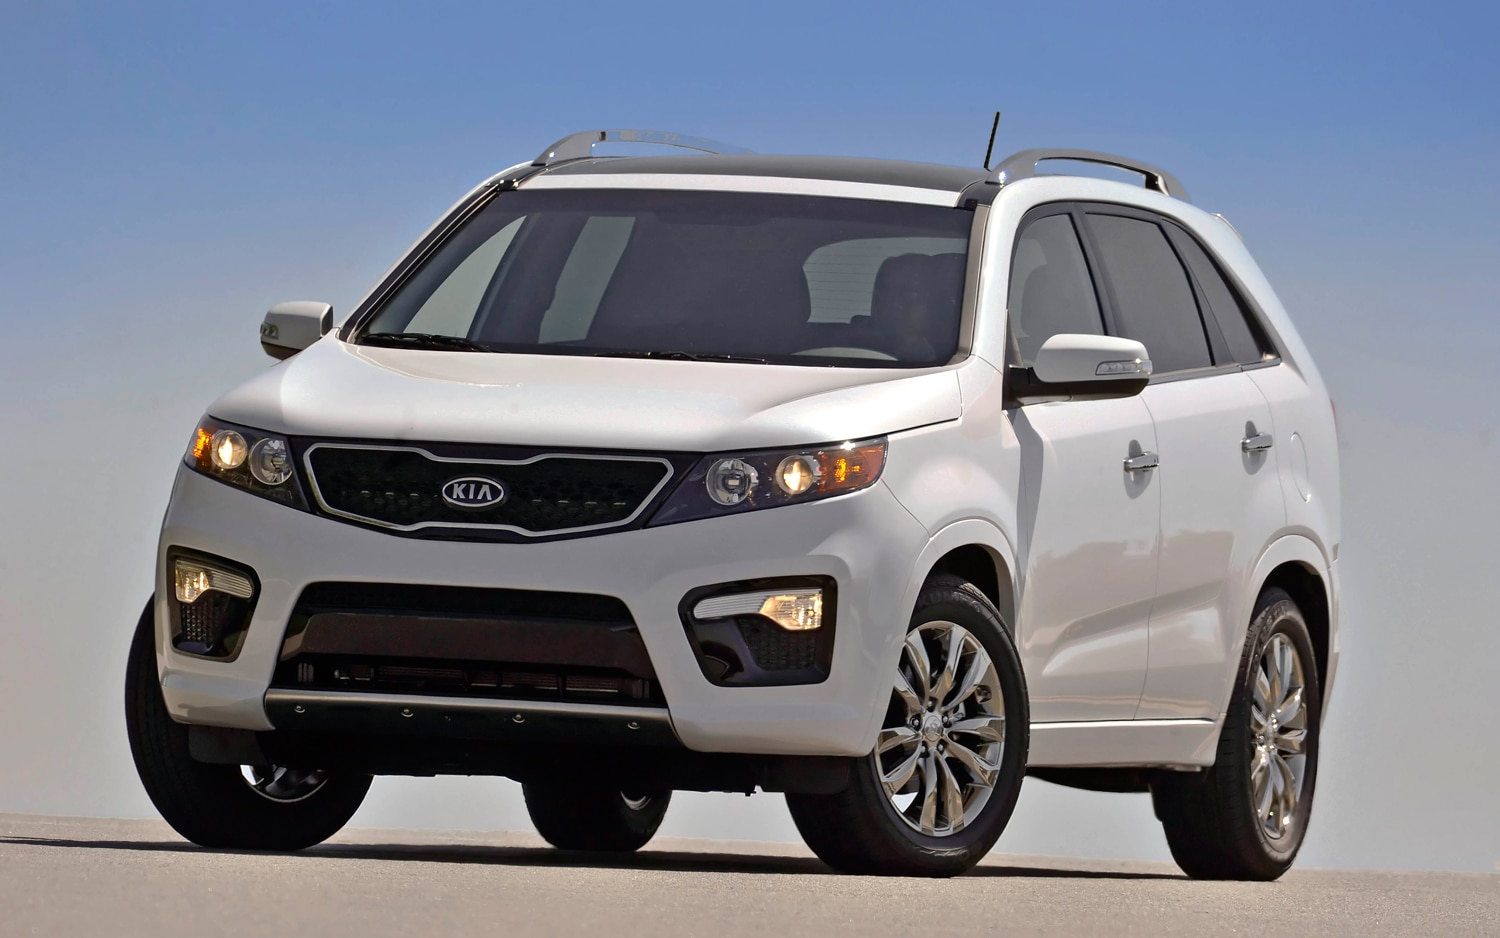 2012 Kia Sorento Front Left View